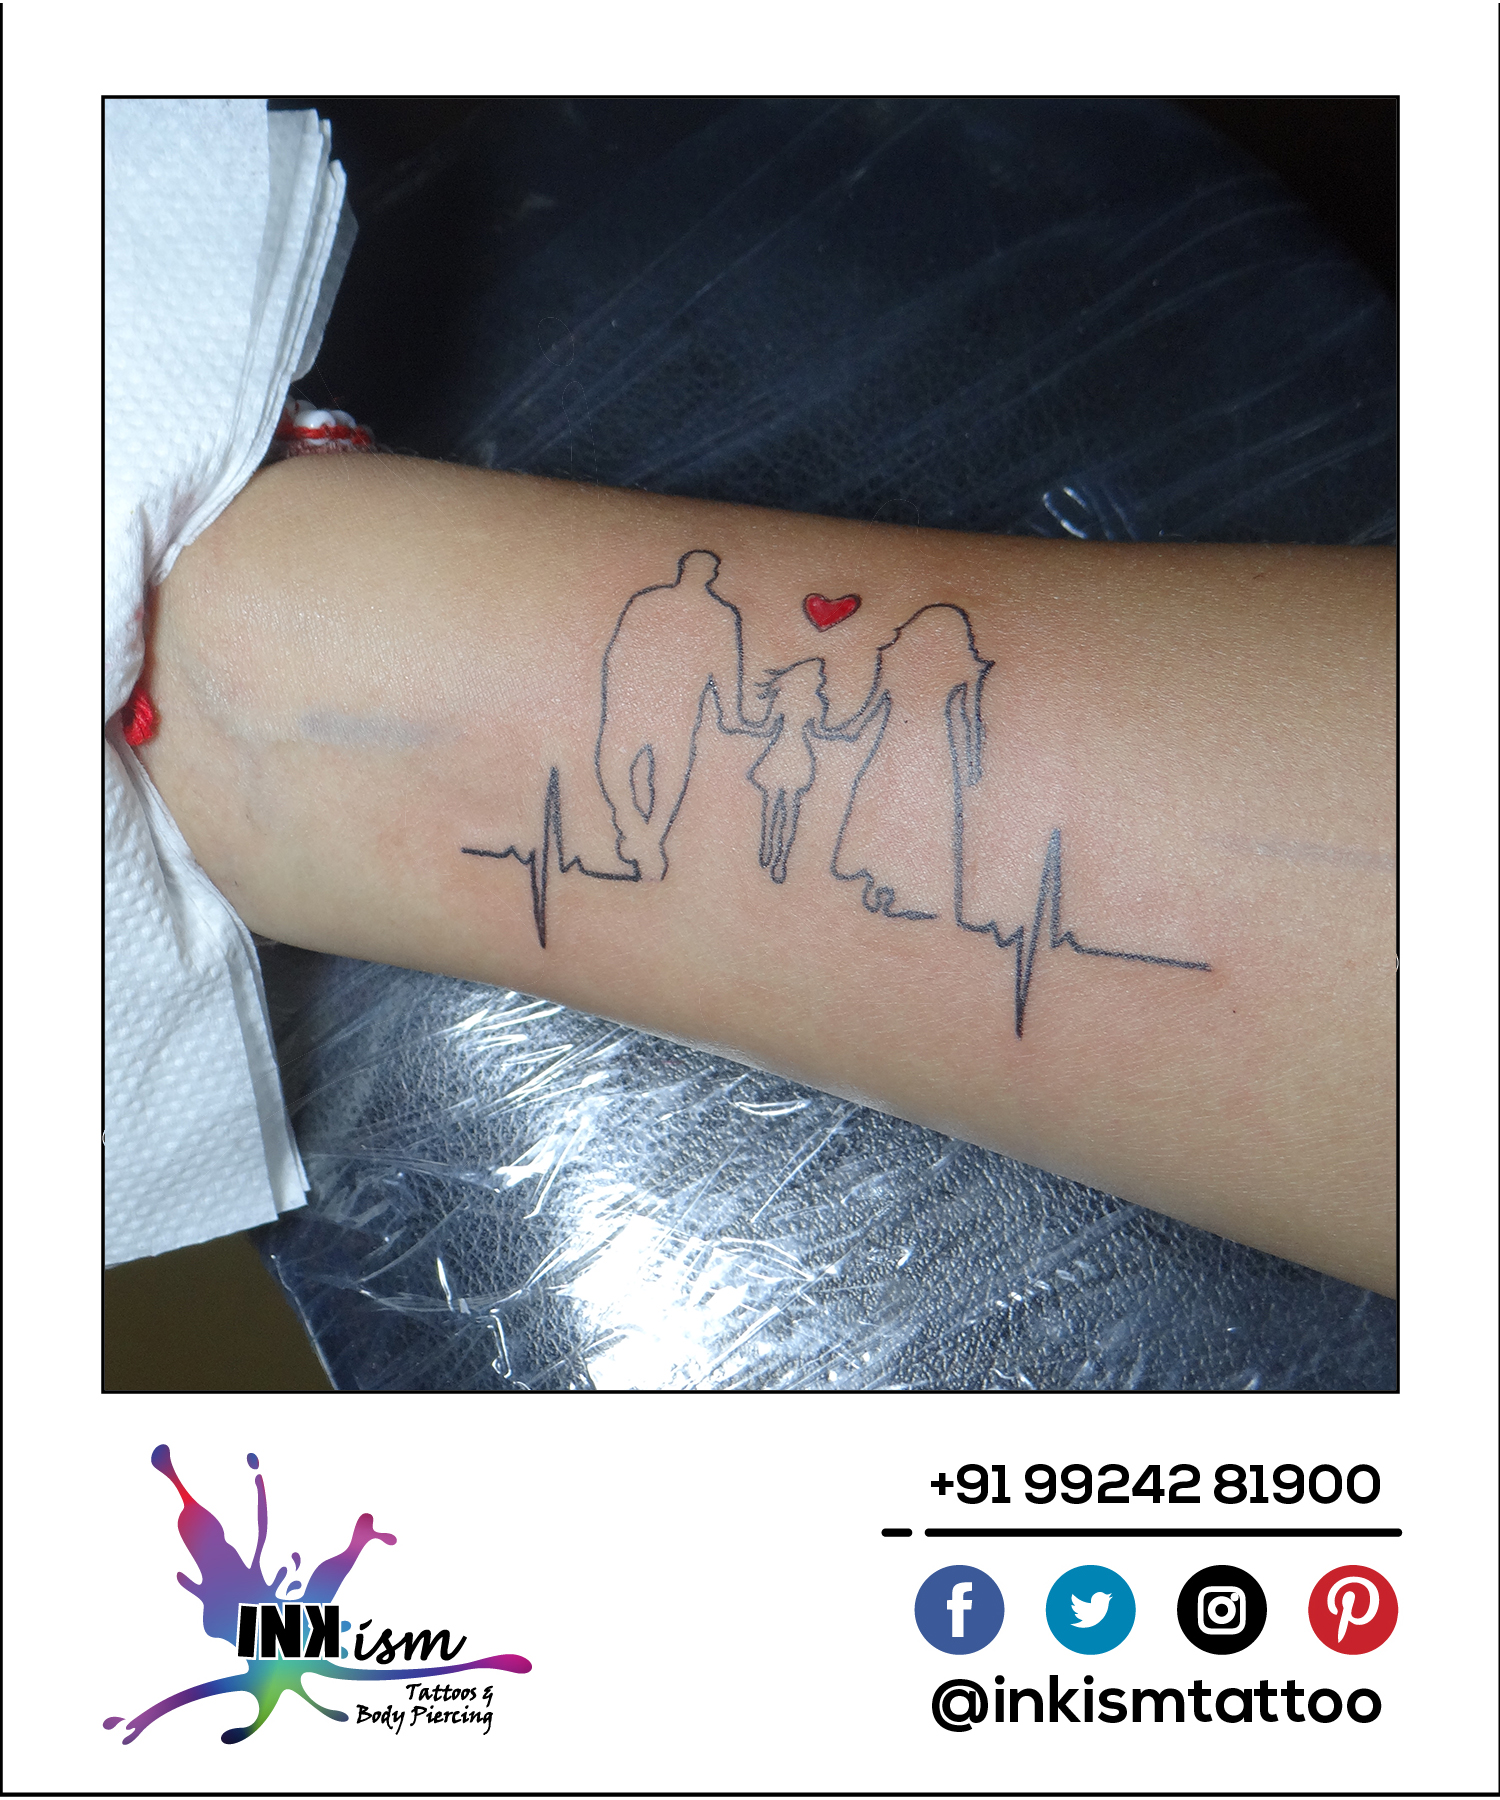 family heartline tattoo, mom dad daughter tattoo design, heart line tattoo, heart tattoo, Inkism tattoo and body piercing rajkot gujarat